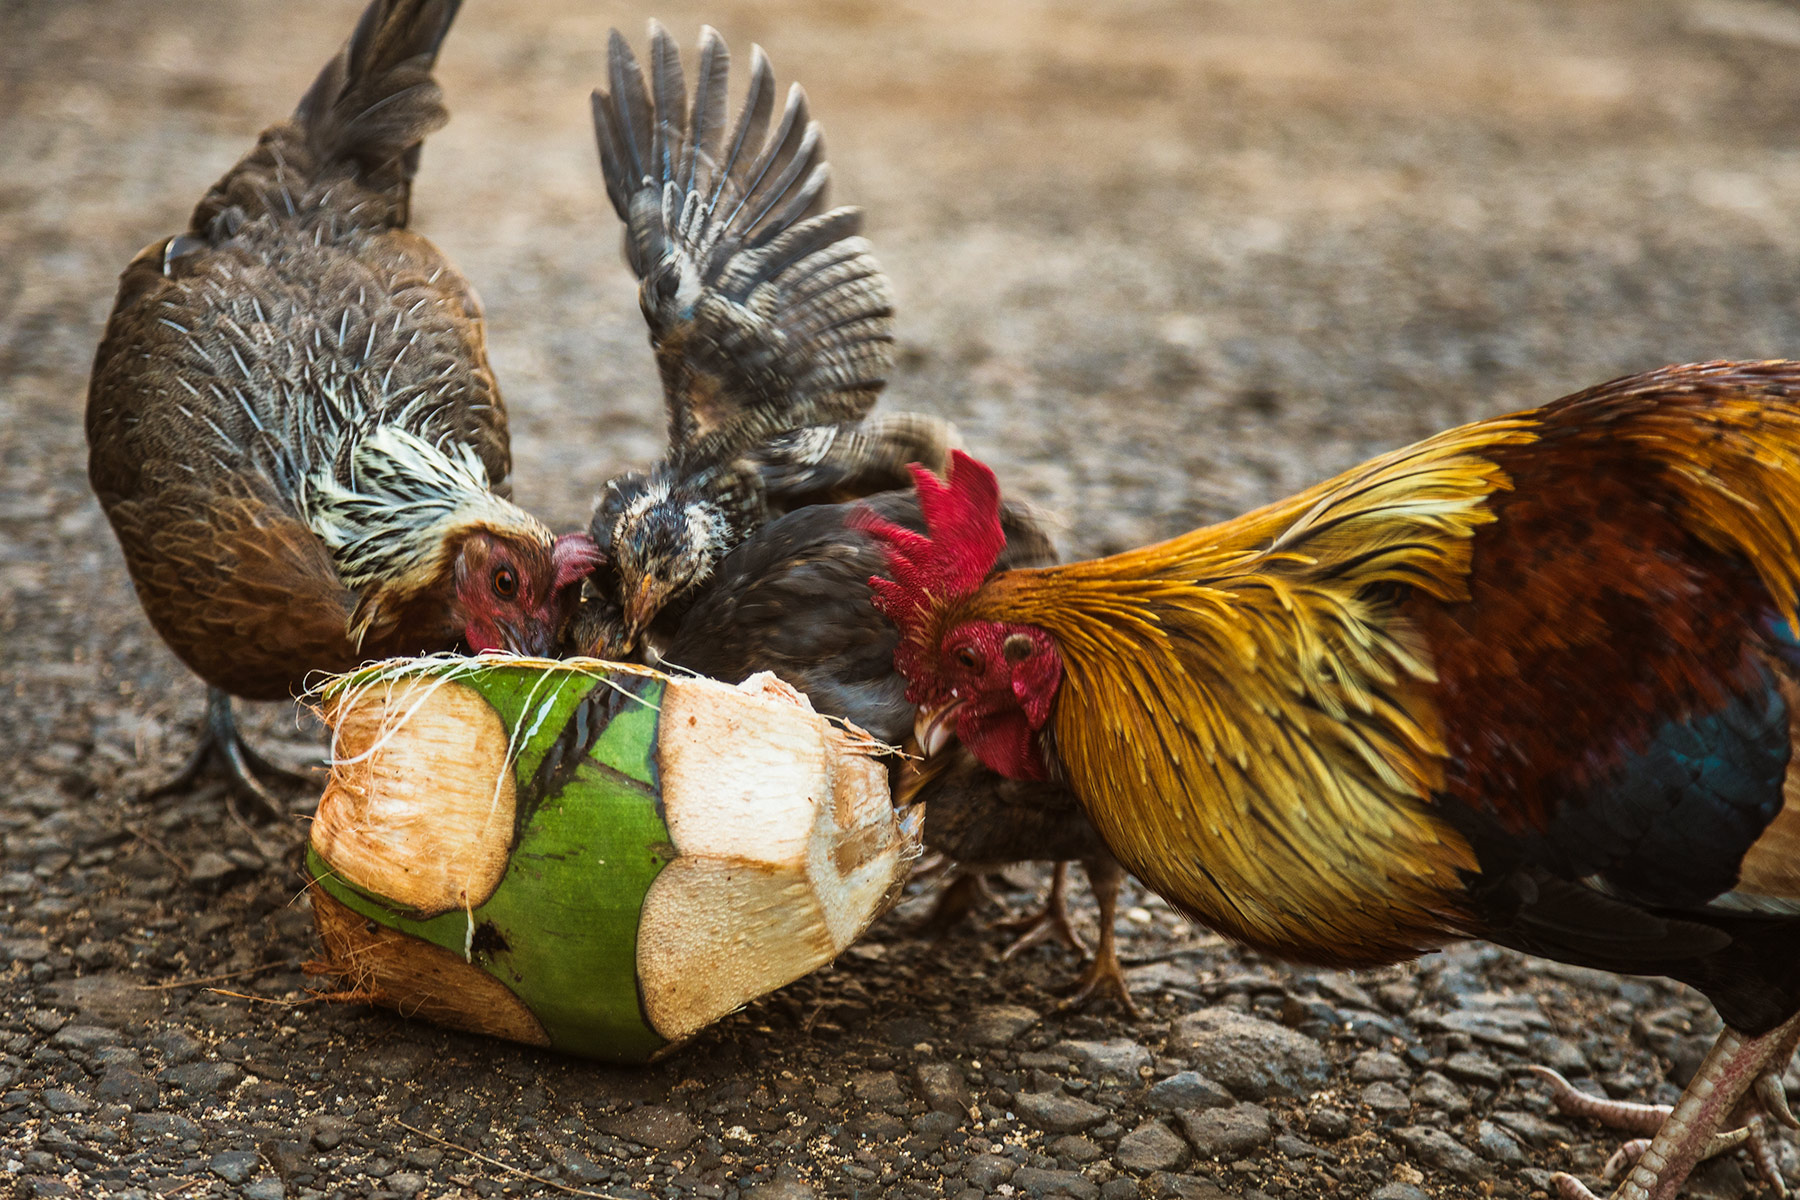 Chickens and Ruster in Kauai sharing a coconut